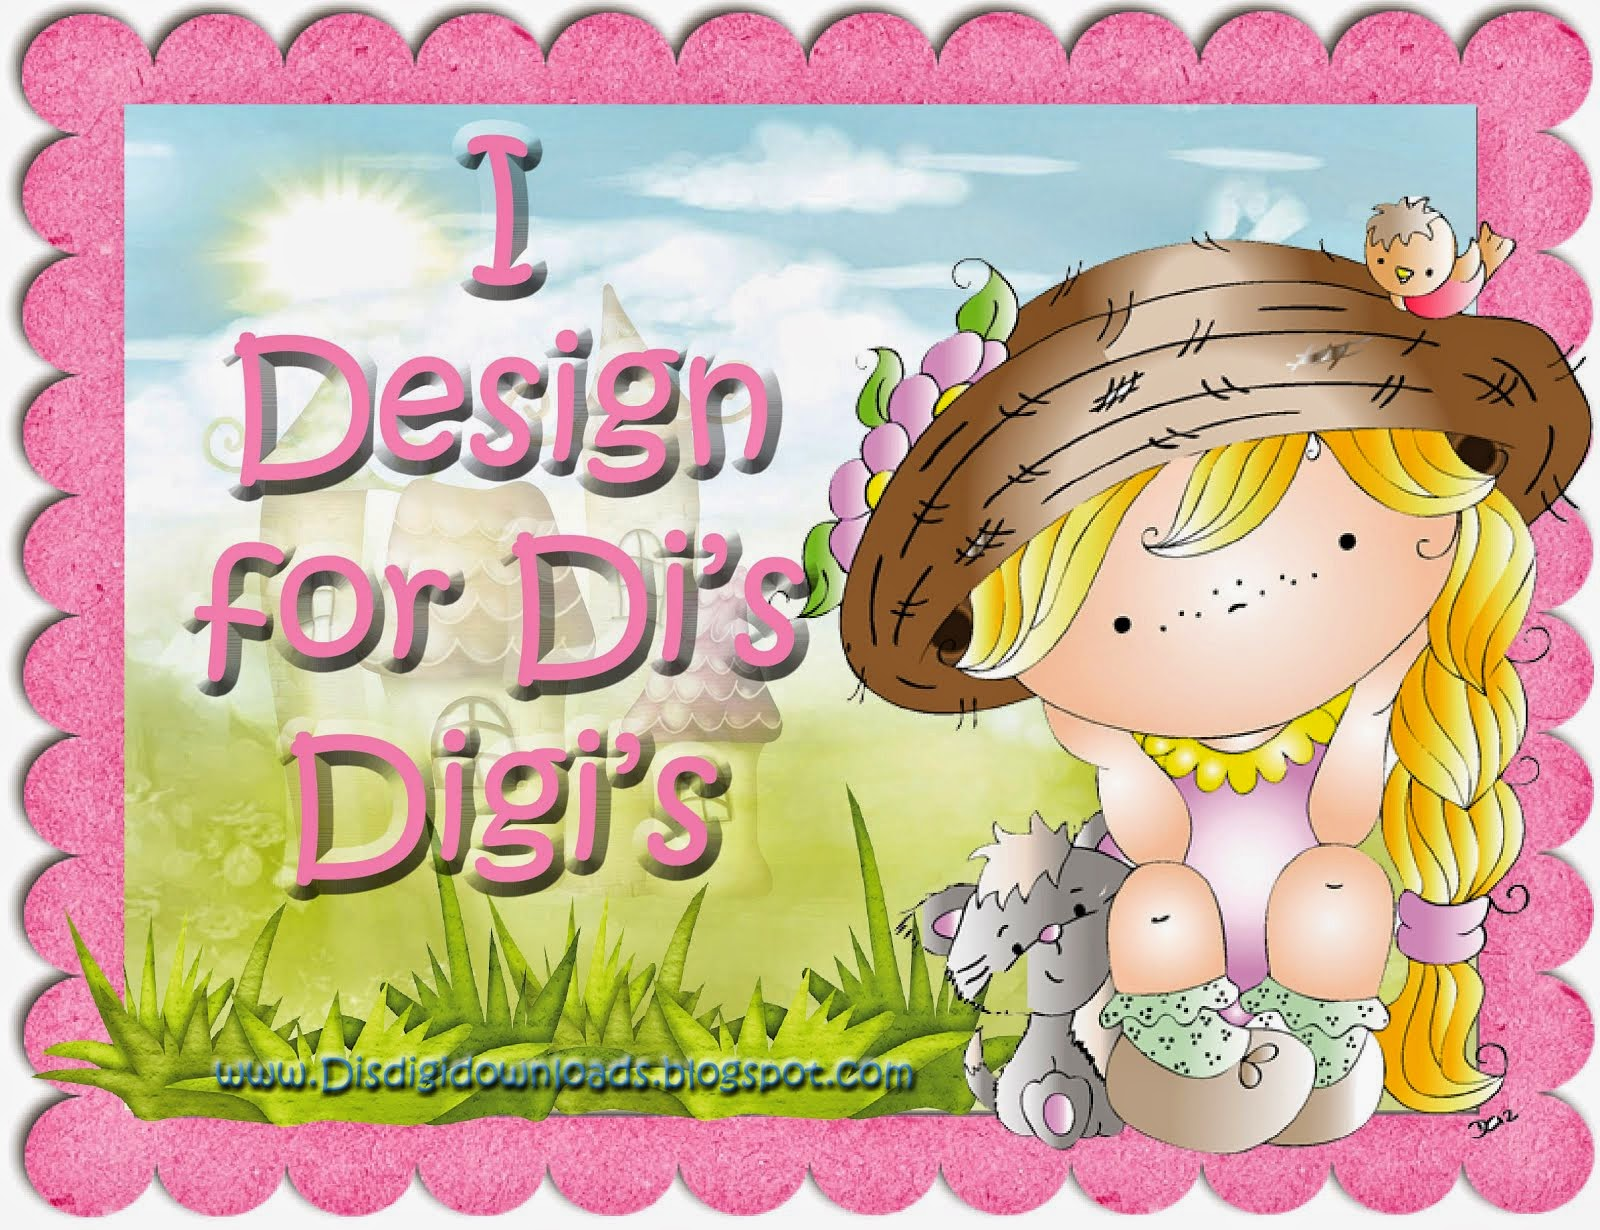 Art Designer for Di's Digi Stamps